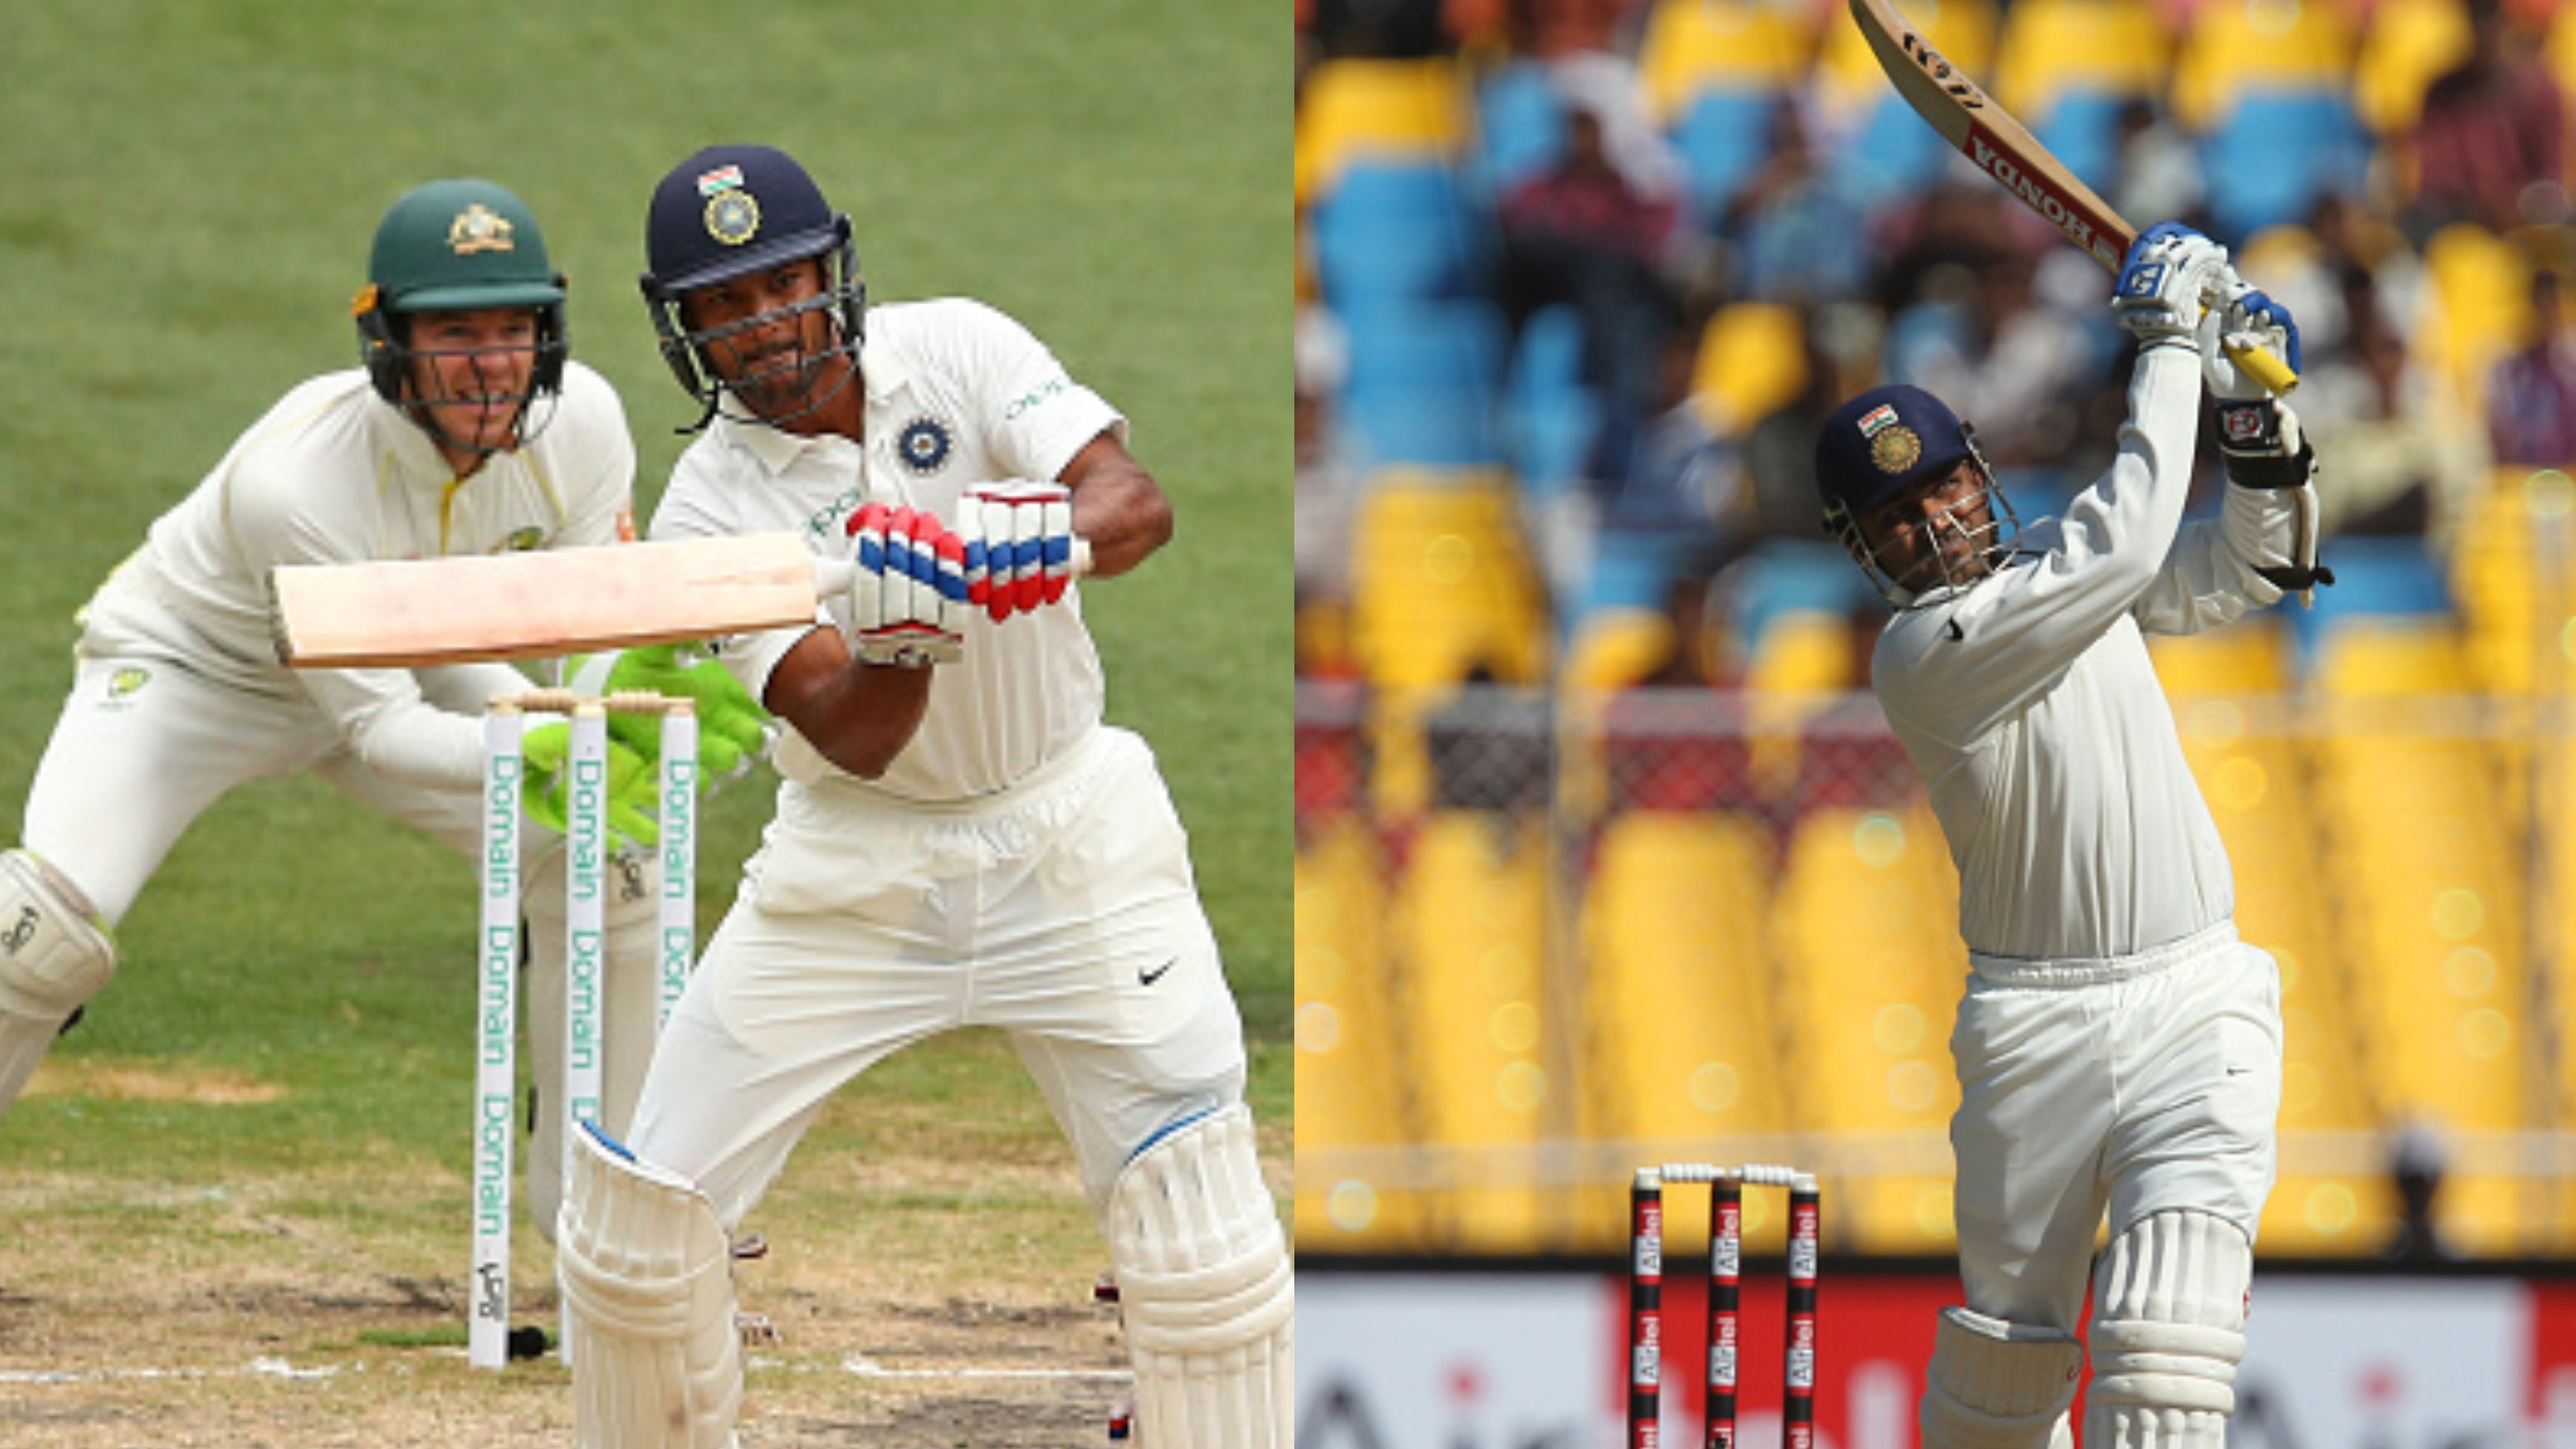 AUS v IND 2018-19: Mayank Agarwal speaks on his Test opportunity, comparison with Virender Sehwag